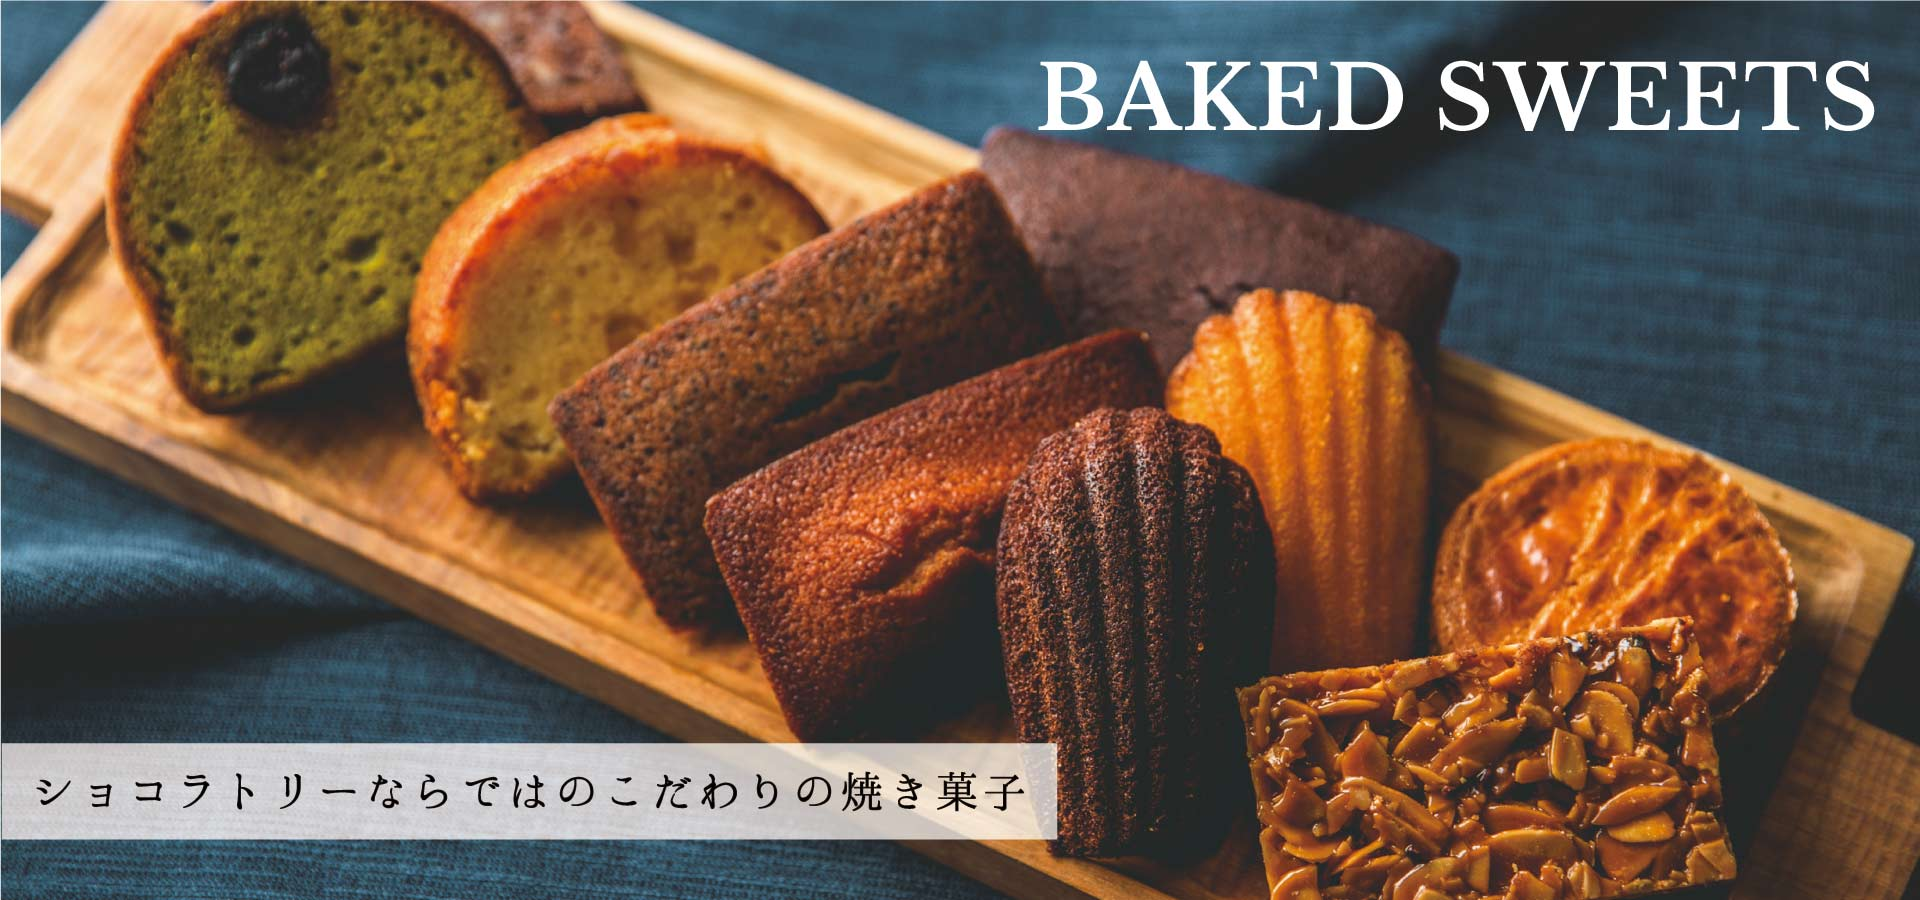 Baked Sweets/焼き菓子